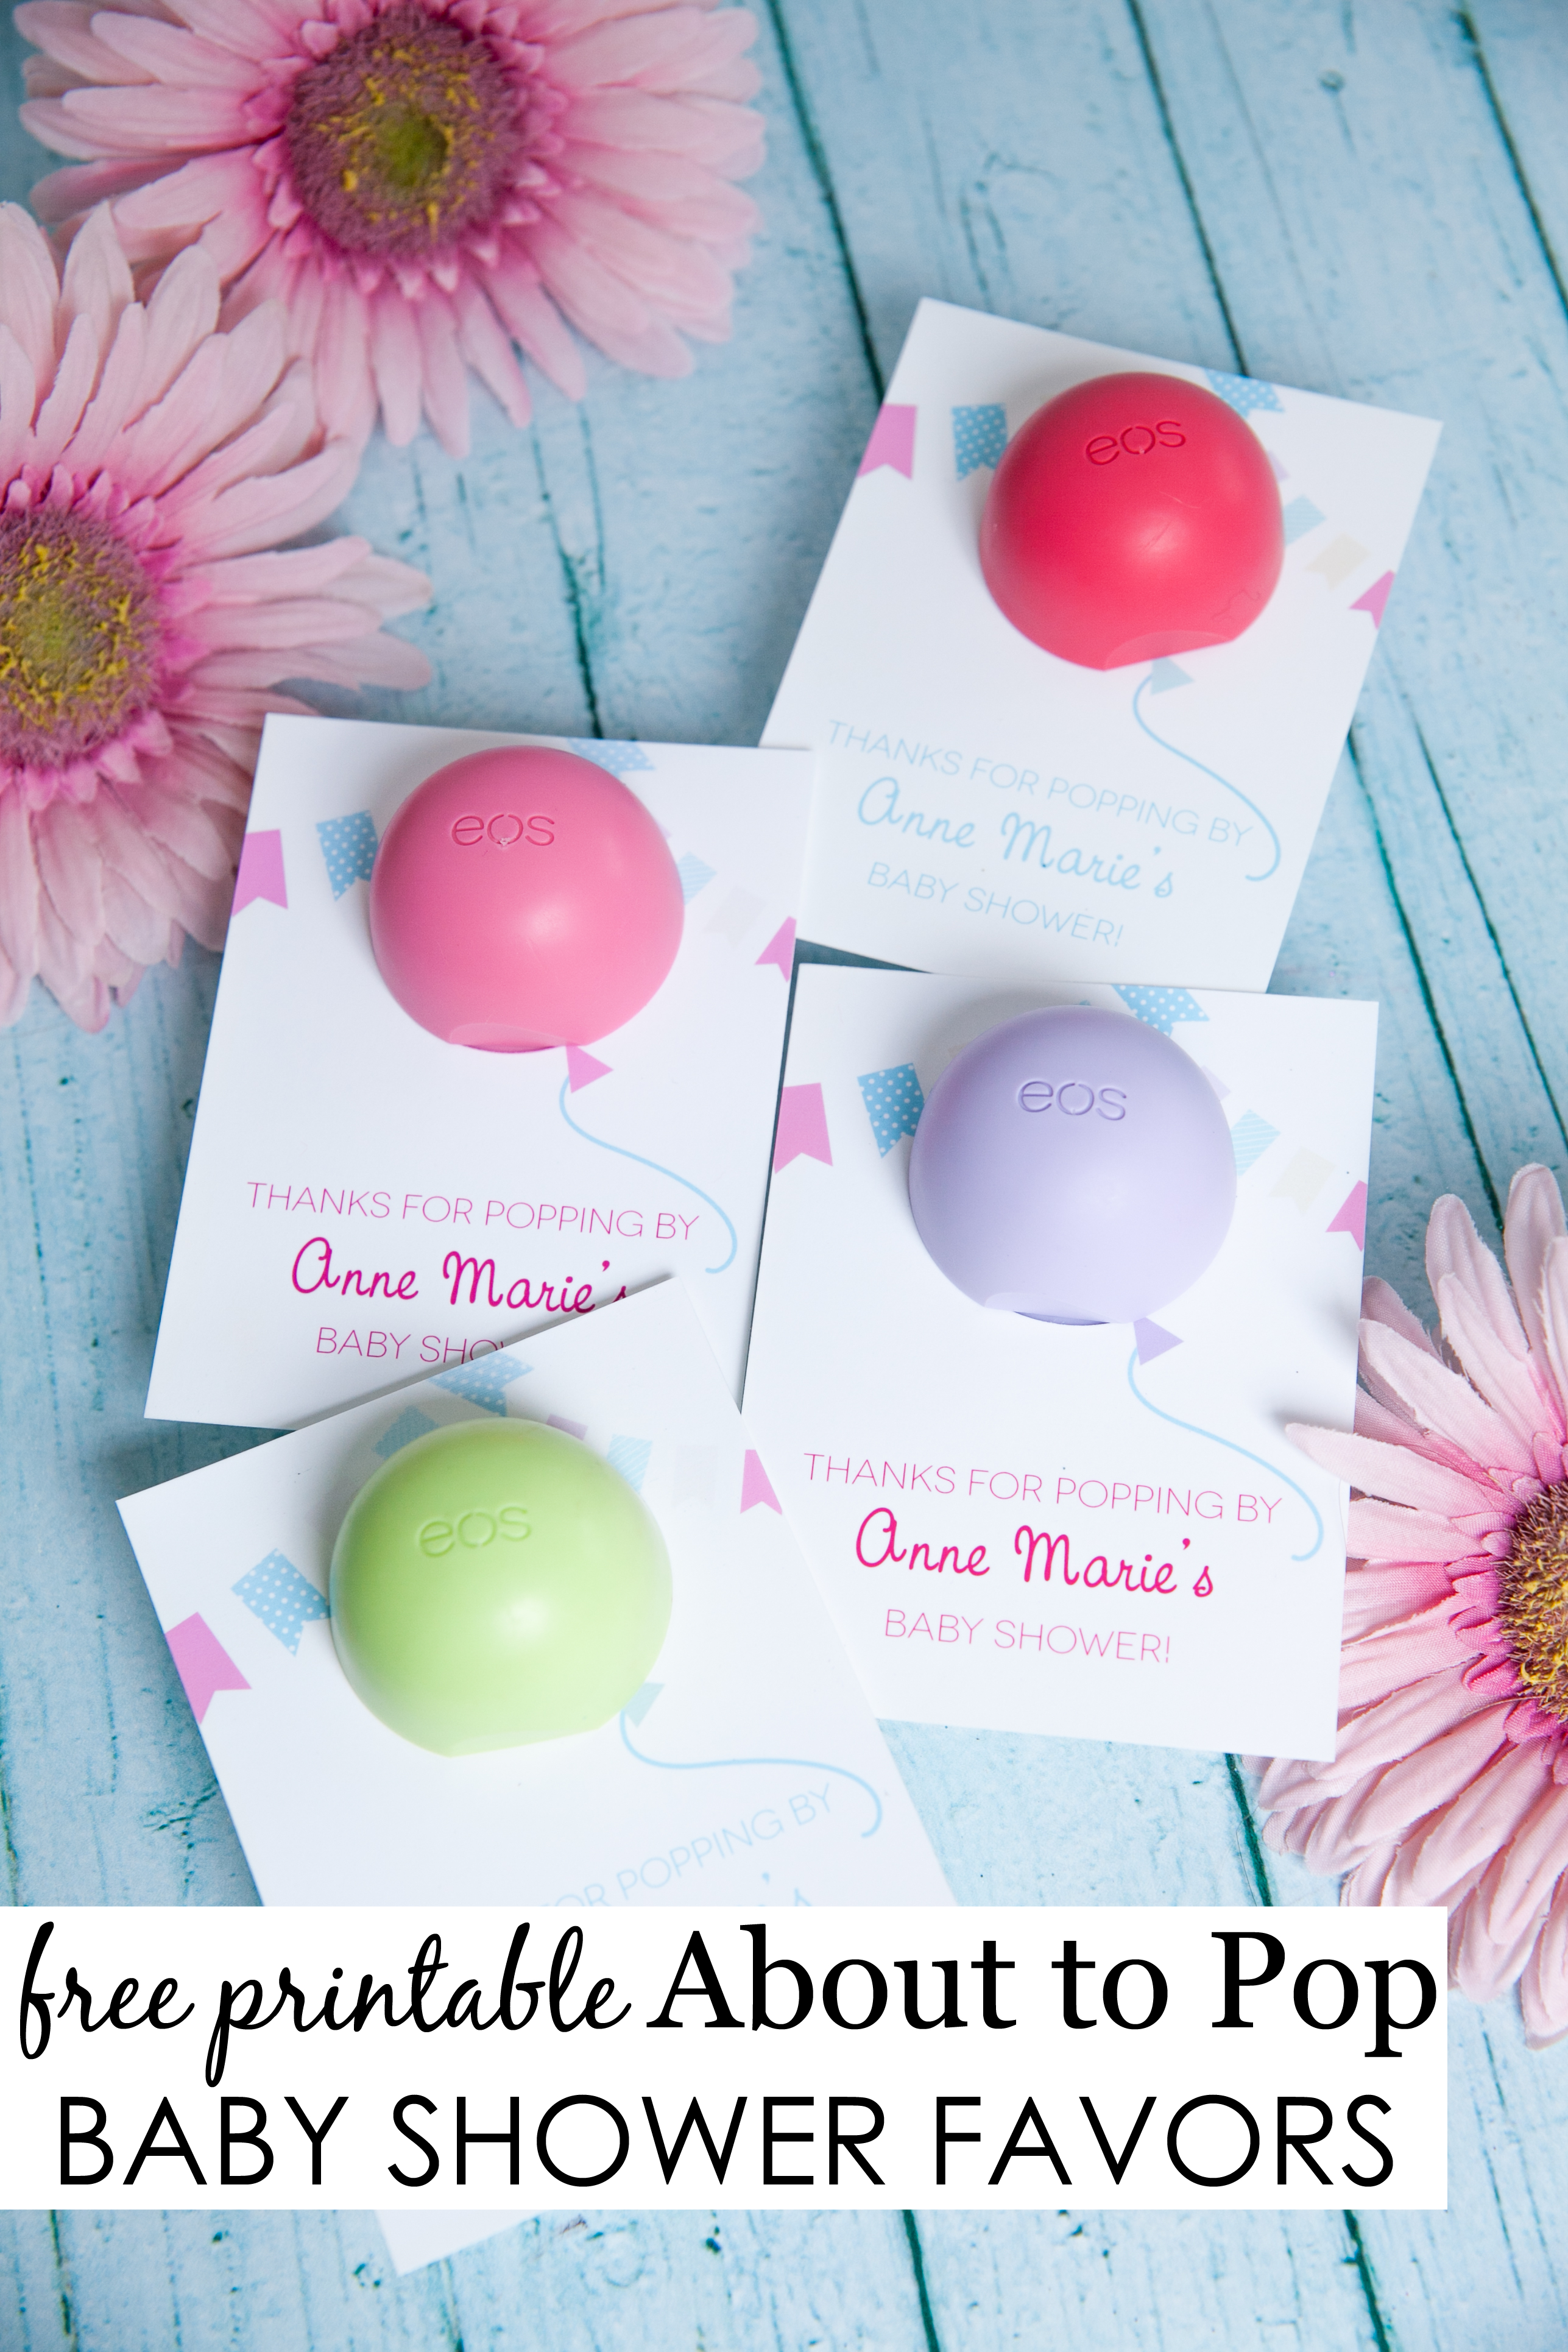 About To Pop Baby Shower Favor | Party Favors | Baby Shower - Free Printable Eos Baby Shower Template